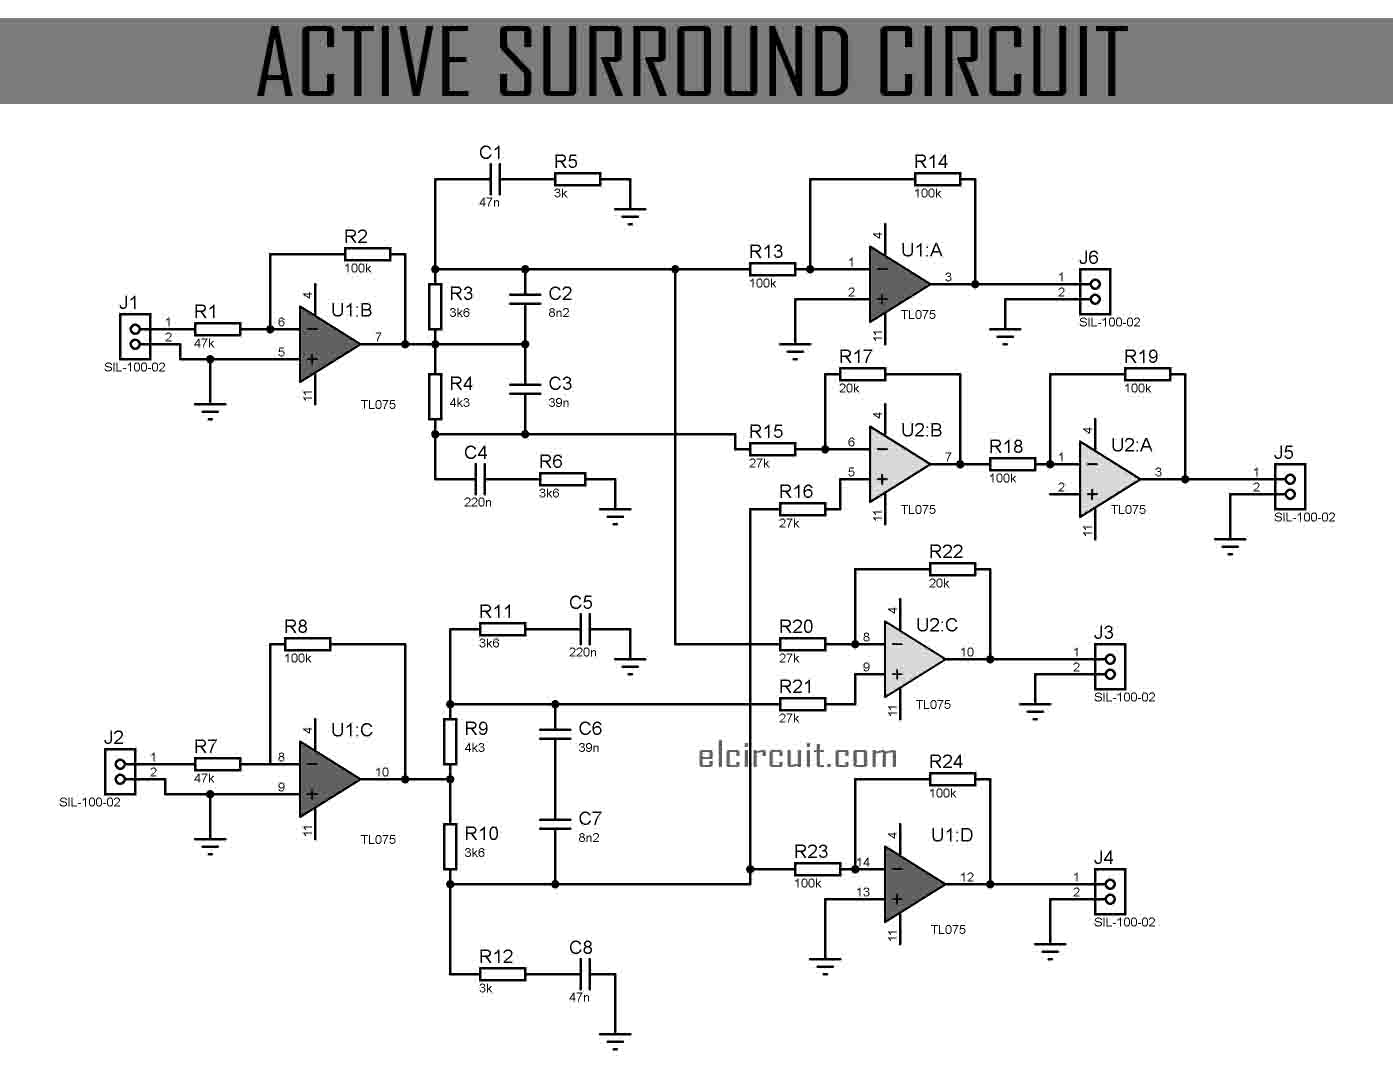 medium resolution of  add speaker subwoofer and amplifier to add more booming bass sound below the active surround sound circuit diagram include regulated power supply 12v